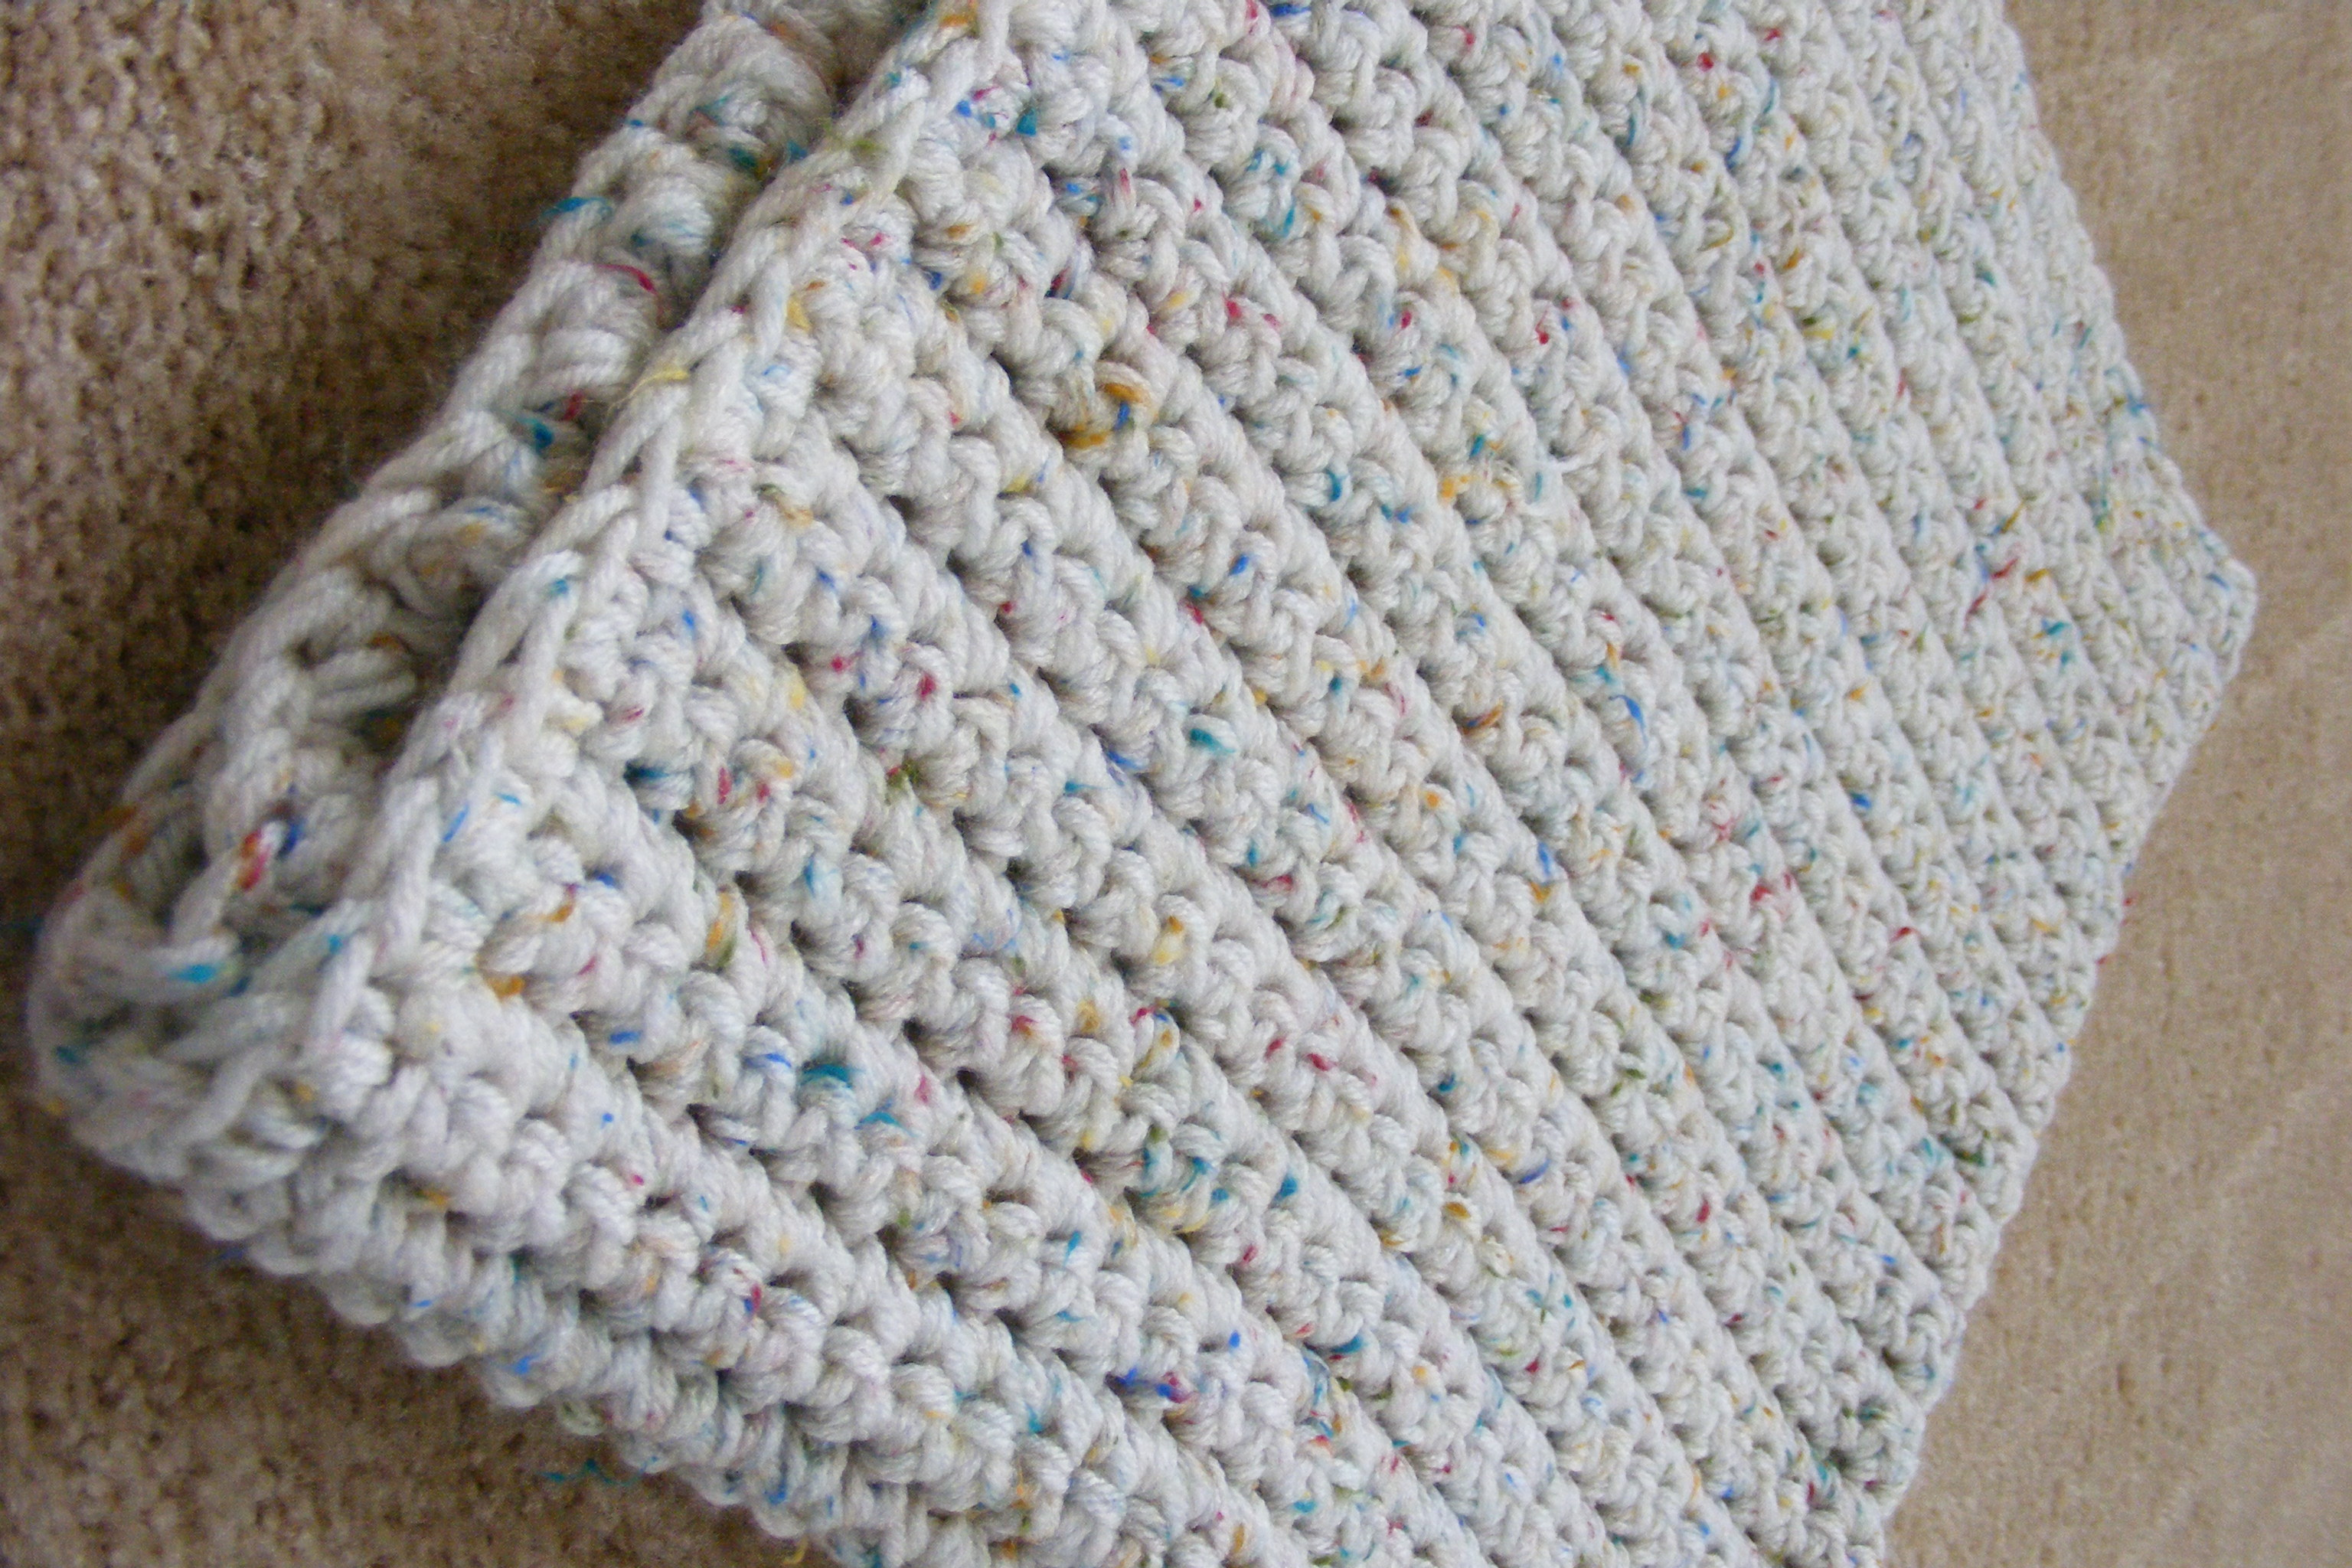 Crocheting Easy Baby Blanket : AllFreeCrochetAfghanPatterns.com - Free Crochet Afghan Patterns